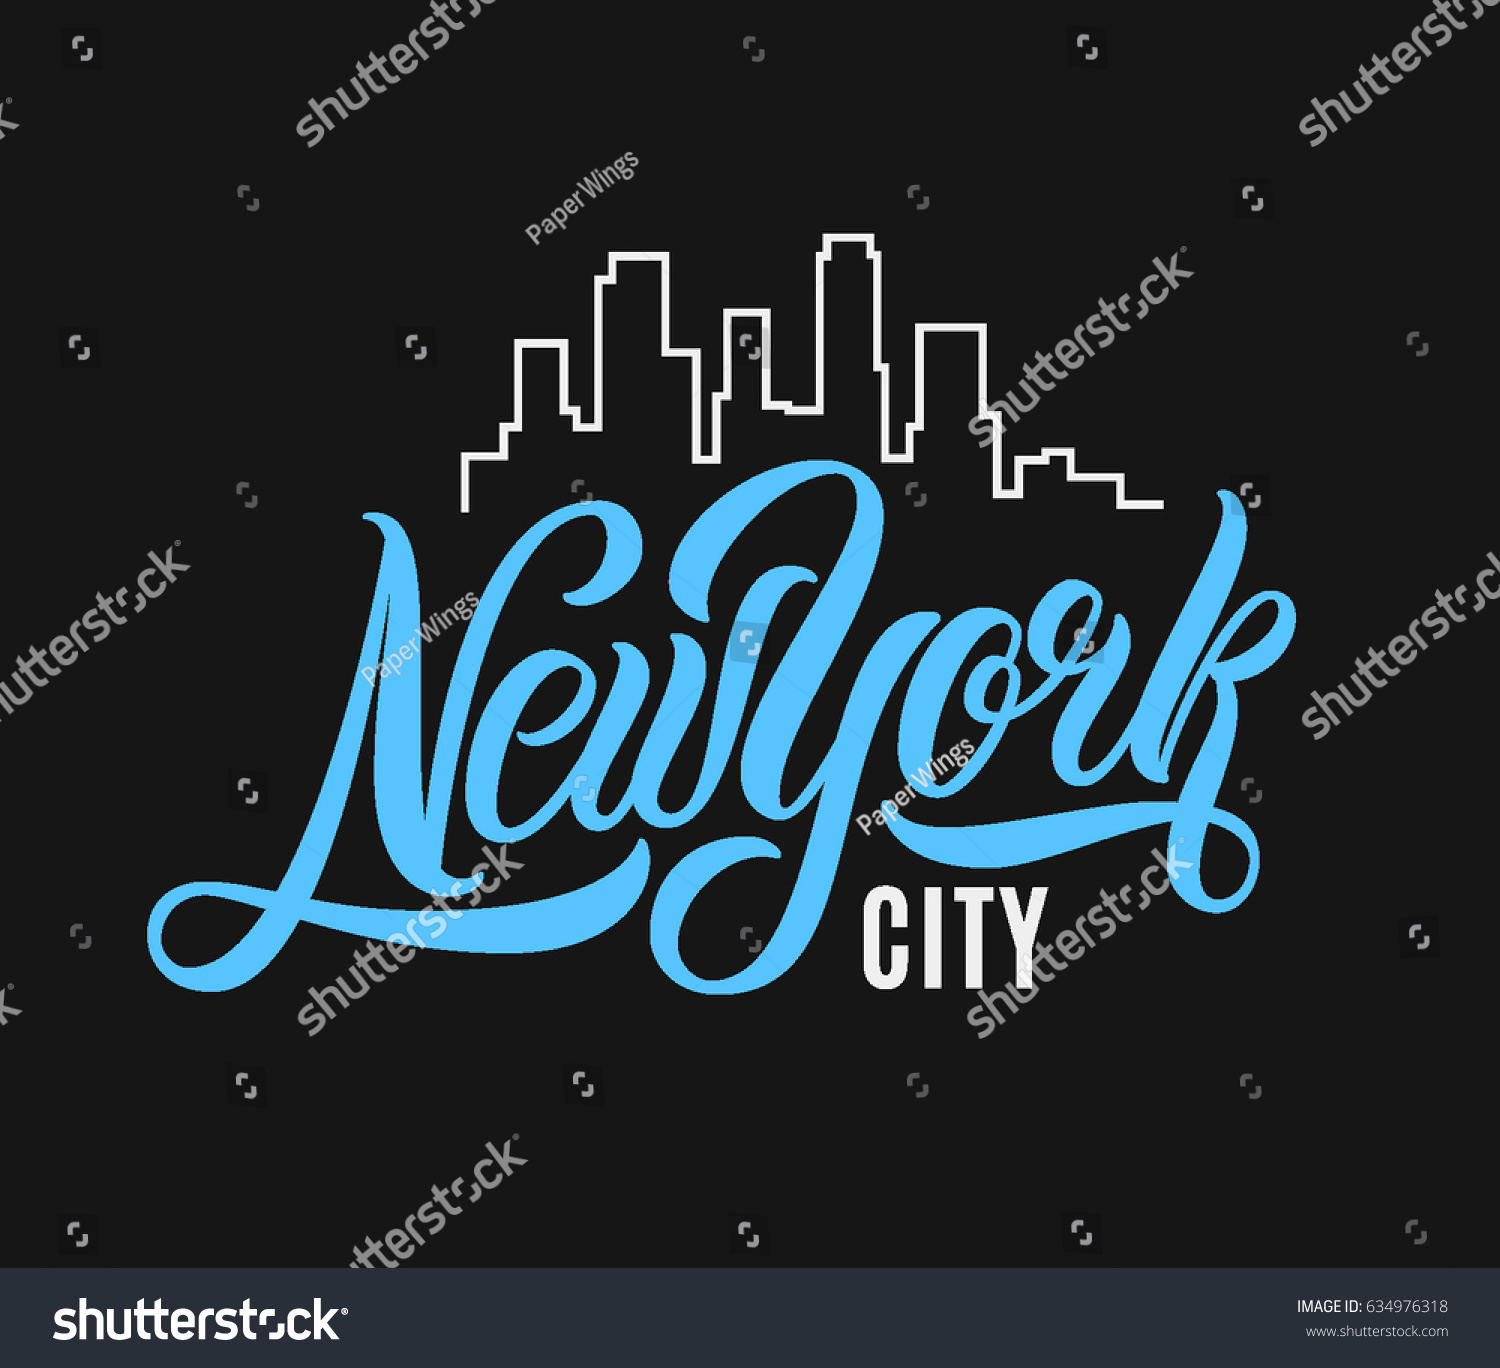 T Shirt Design York: New York City Tshirt Design Vector Stock Vector 634976318